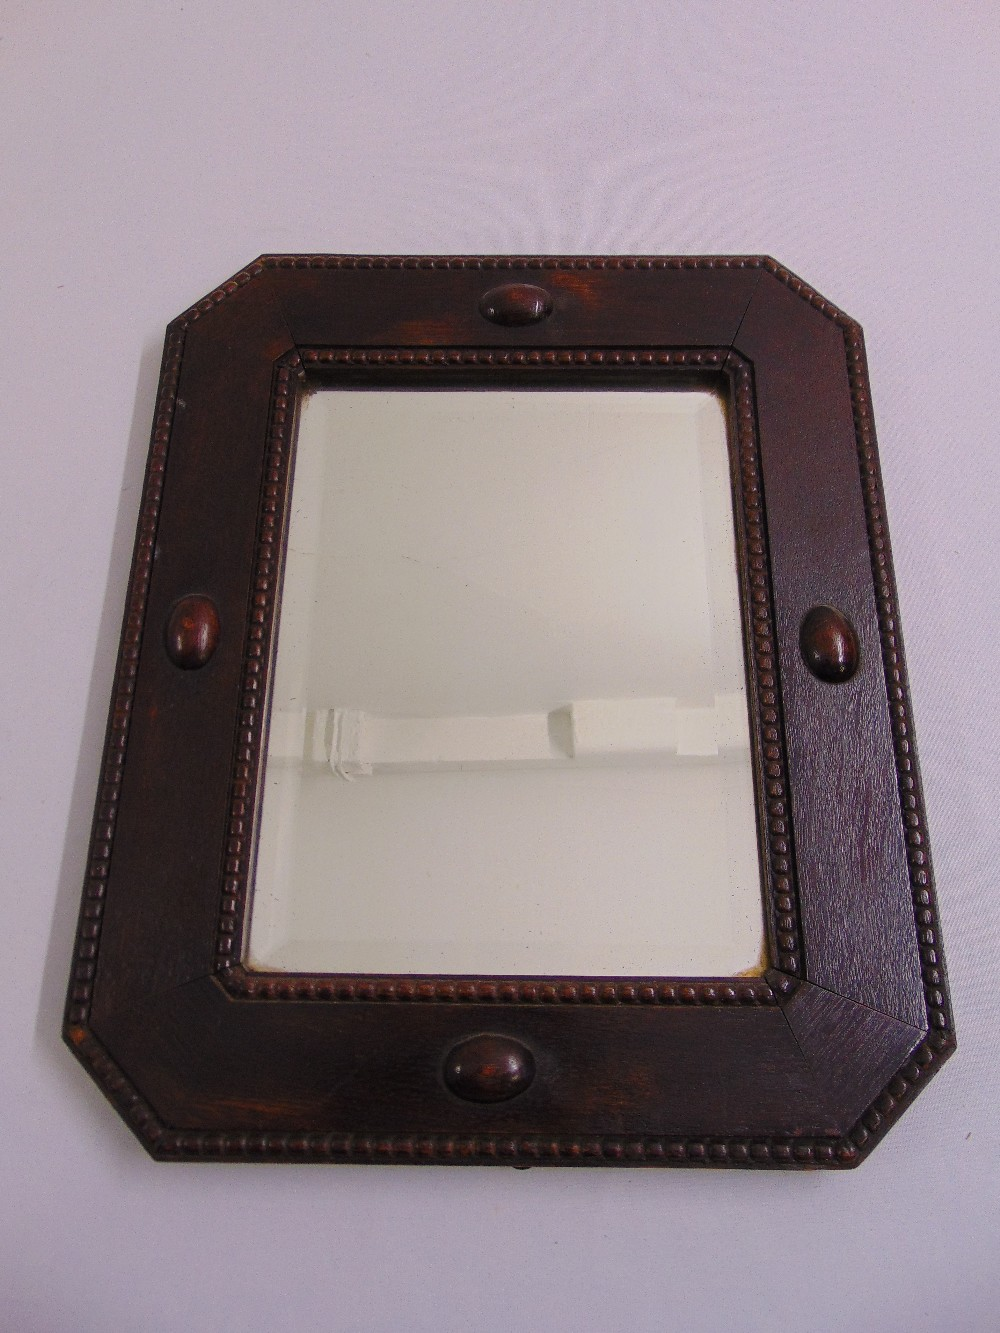 Lot 43 - A mahogany framed Arts and Crafts shaped rectangular bevelled edge wall mirror